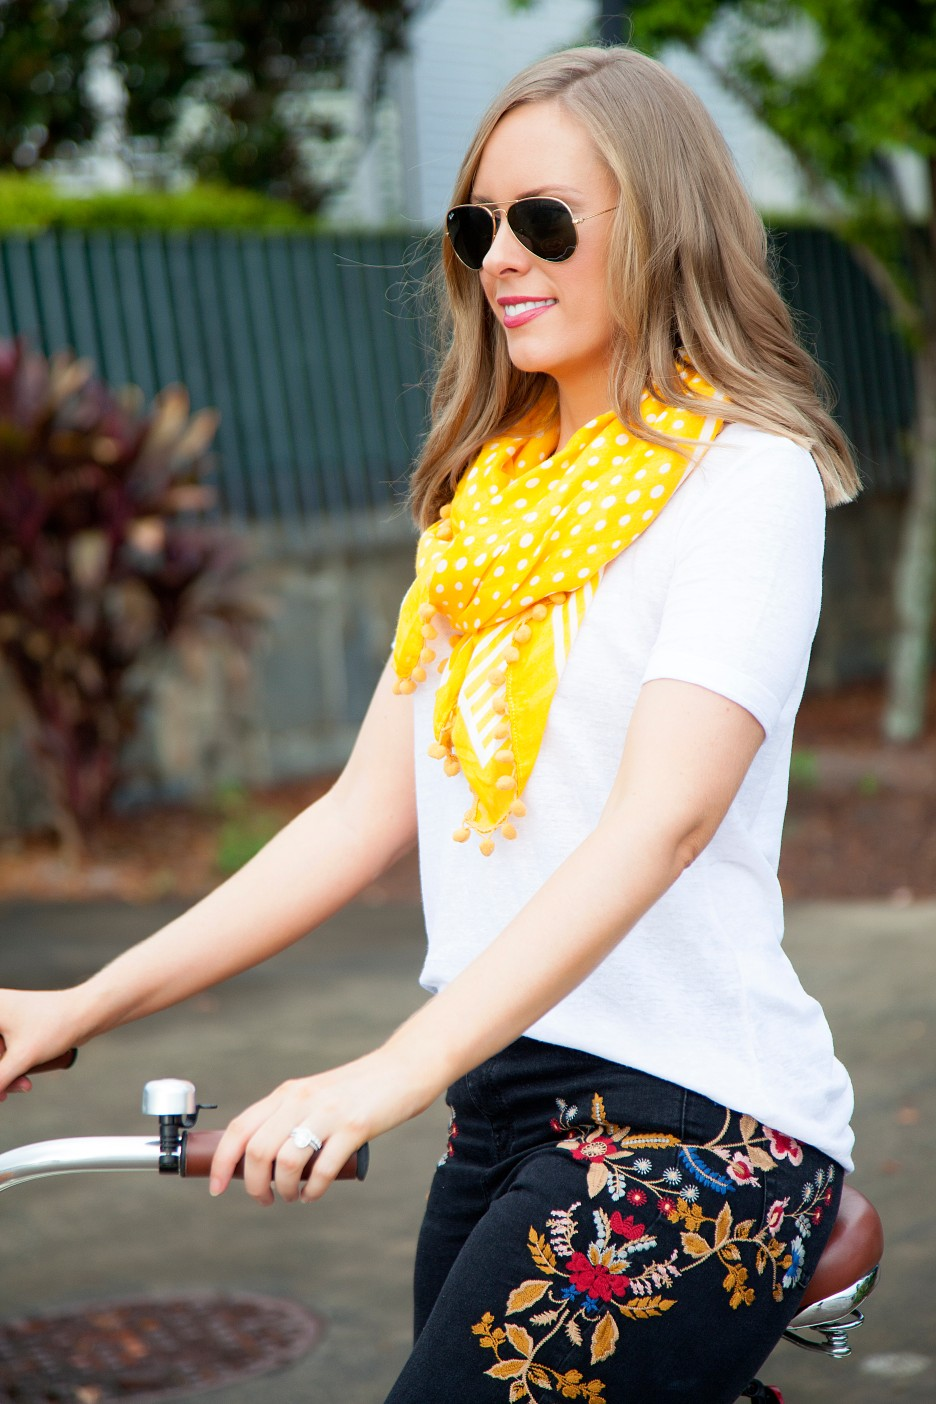 casual outfit ideas embroidered jeans and white tee marigold trend fashion blogger cute cream bike with basket electra cruiser bike lauren slade style elixir blog 3